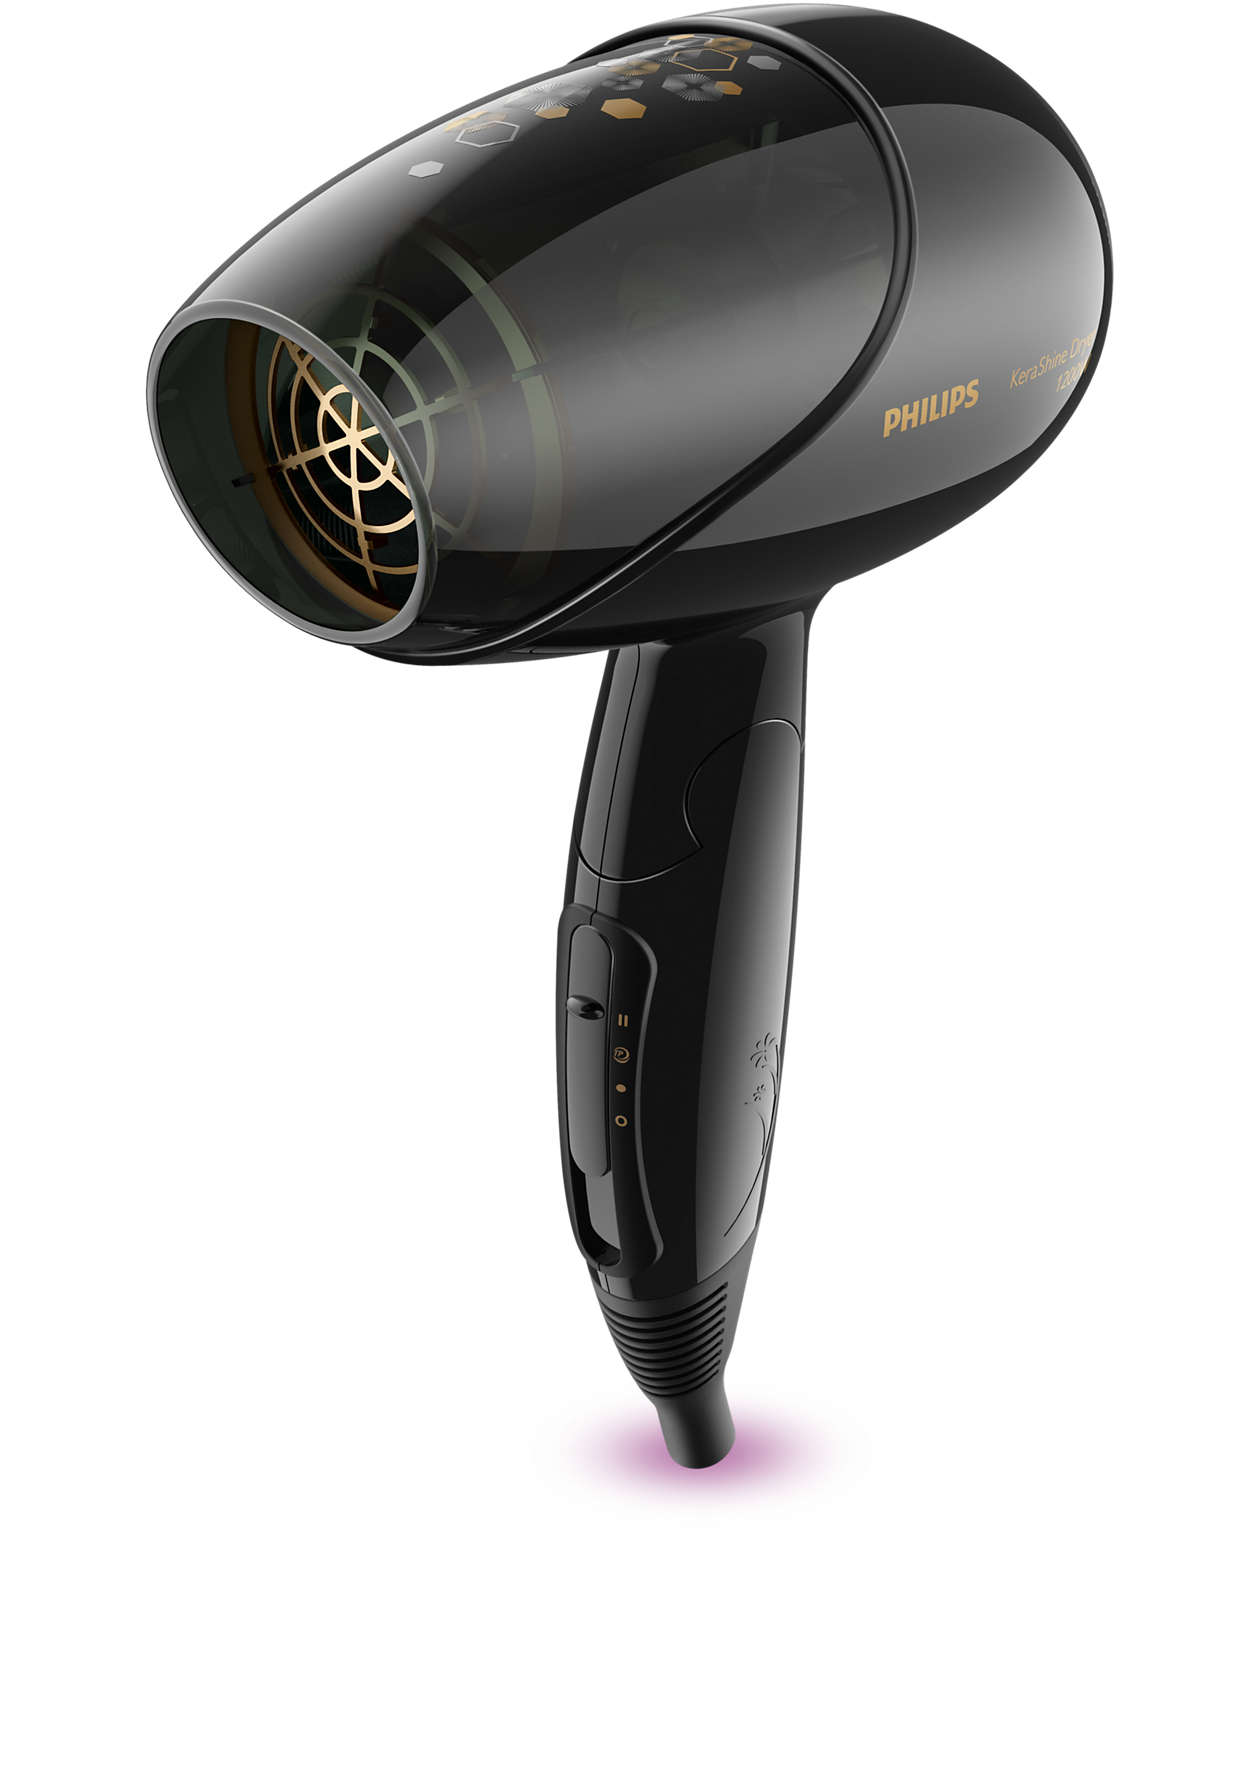 Philips IonBoost HP8119/00 hair dryer